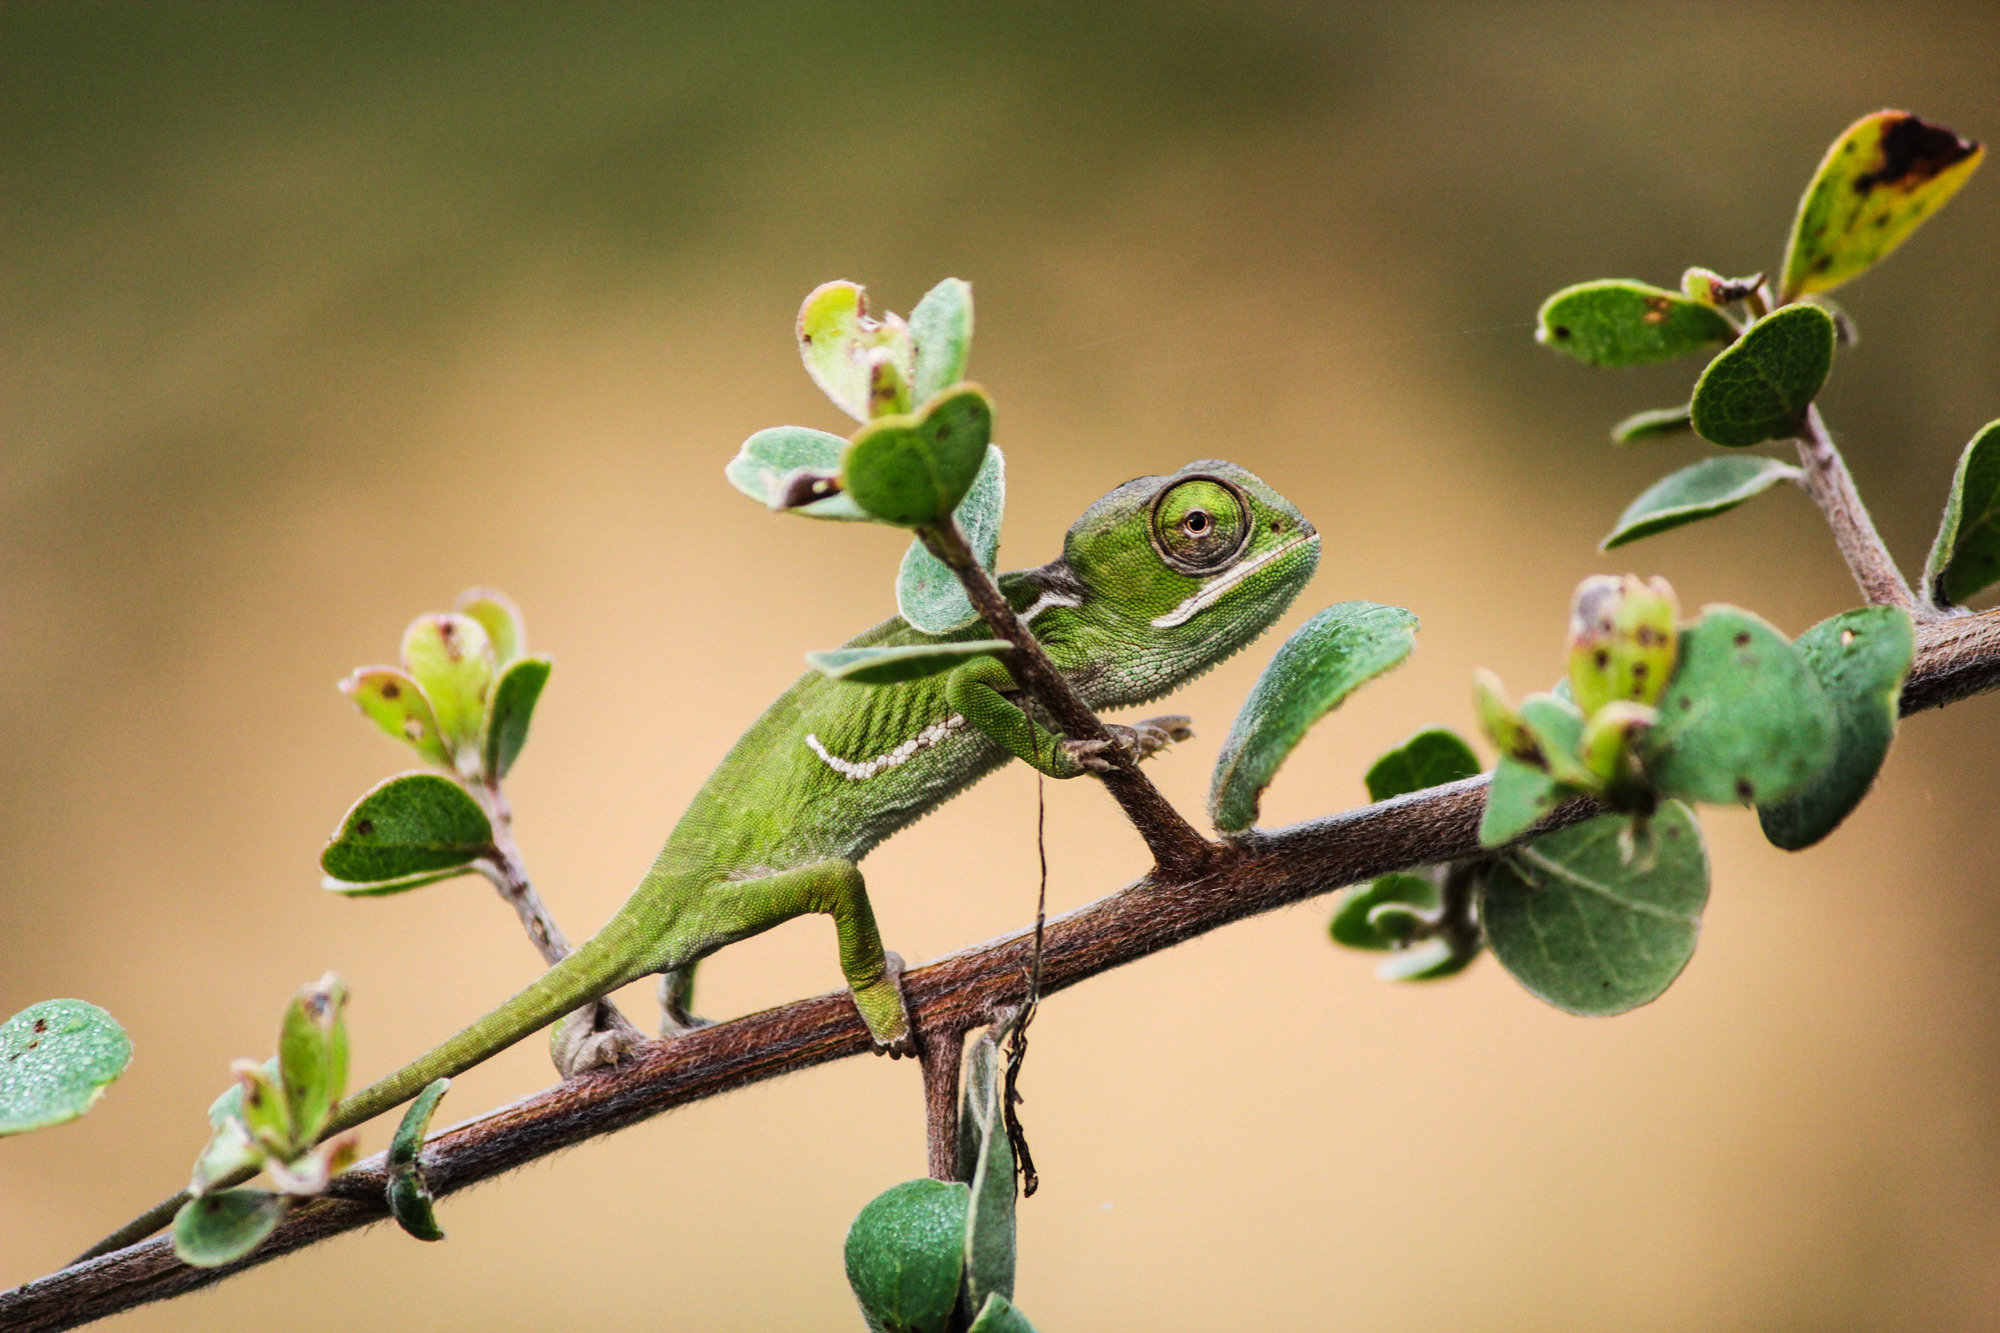 A baby chameleon photographed during the day in Balule Private Nature Reserve, South Africa